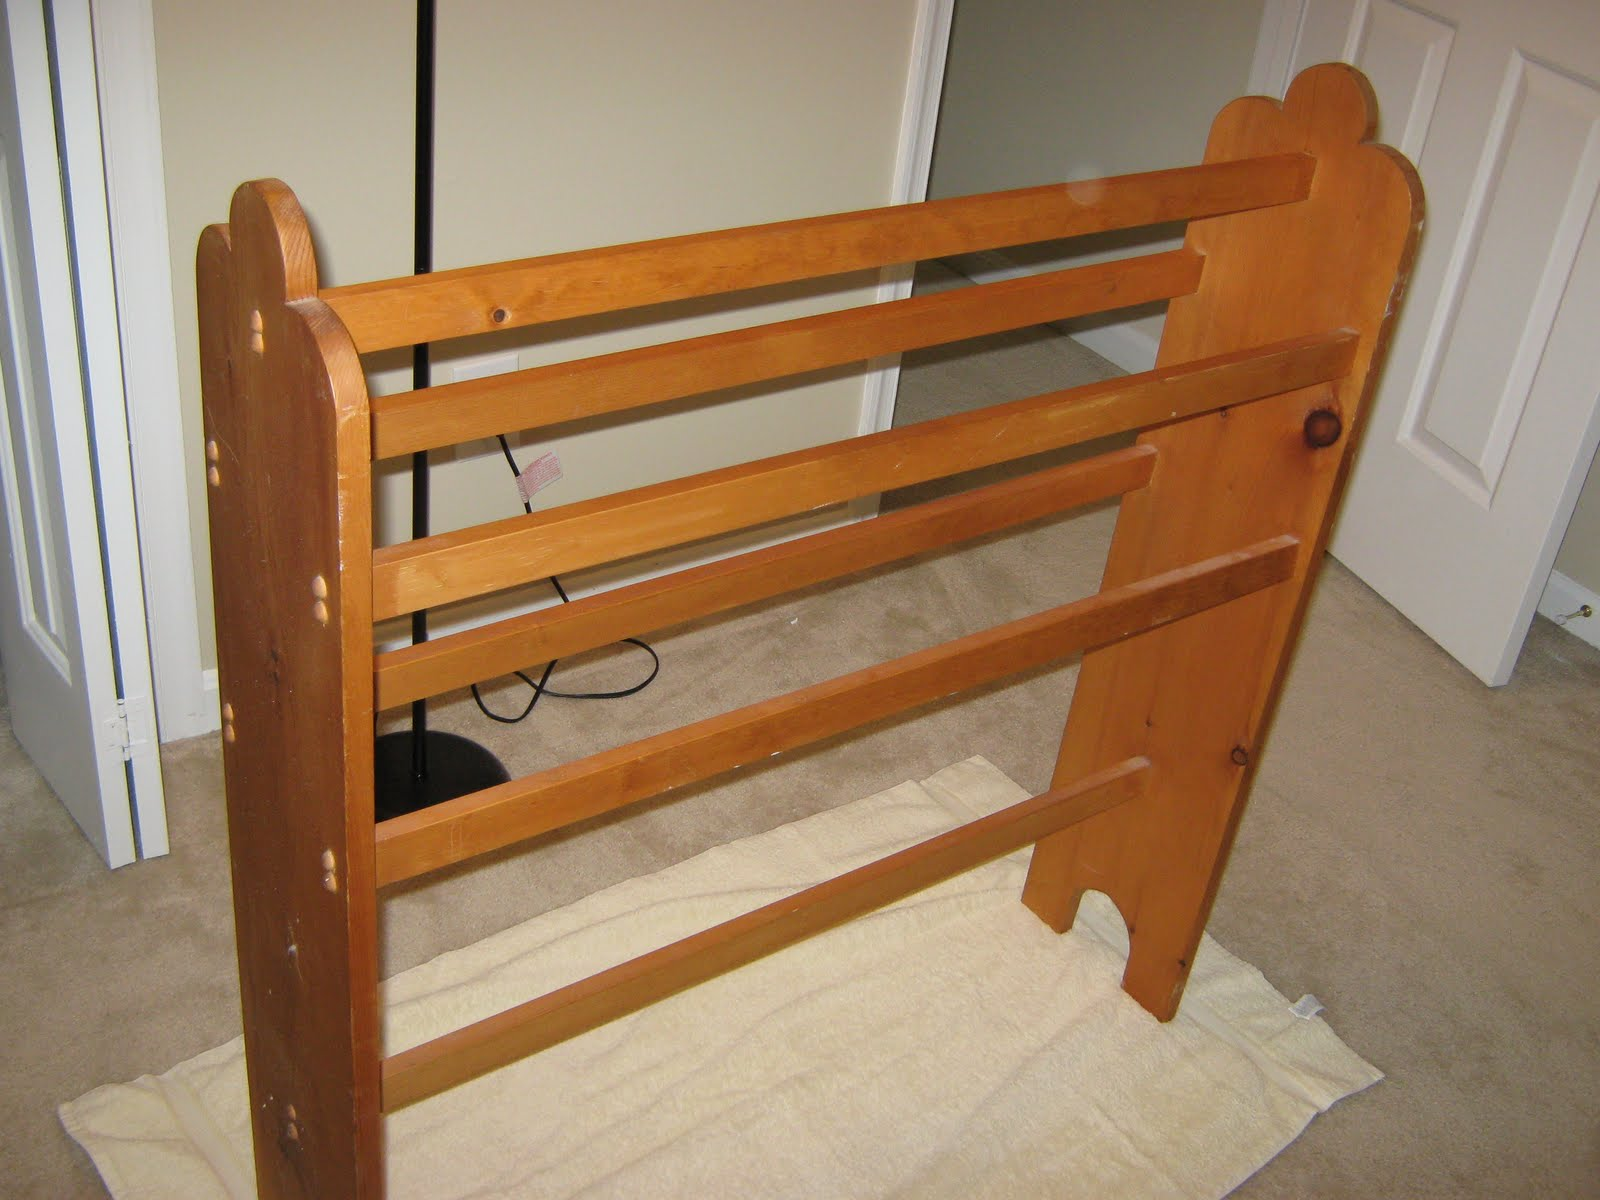 frame x bed stand quilt wooden plans plus photo diy loft rack racks awesome of